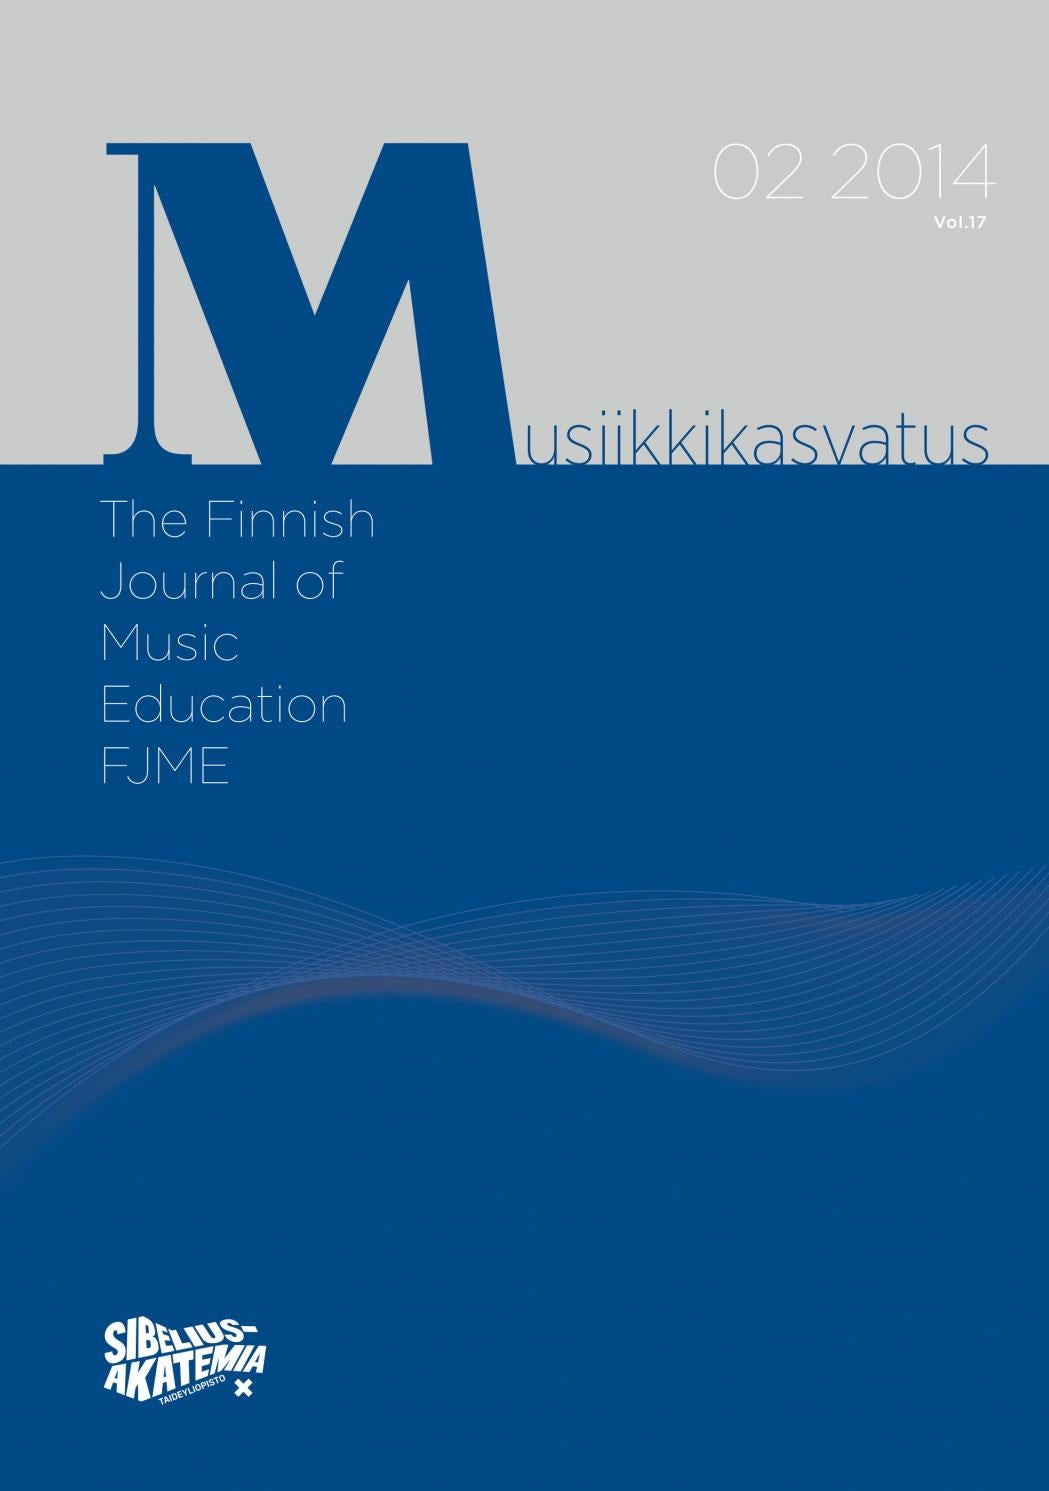 FJME vol17 02 2014 by Sibelius Academy of the University of